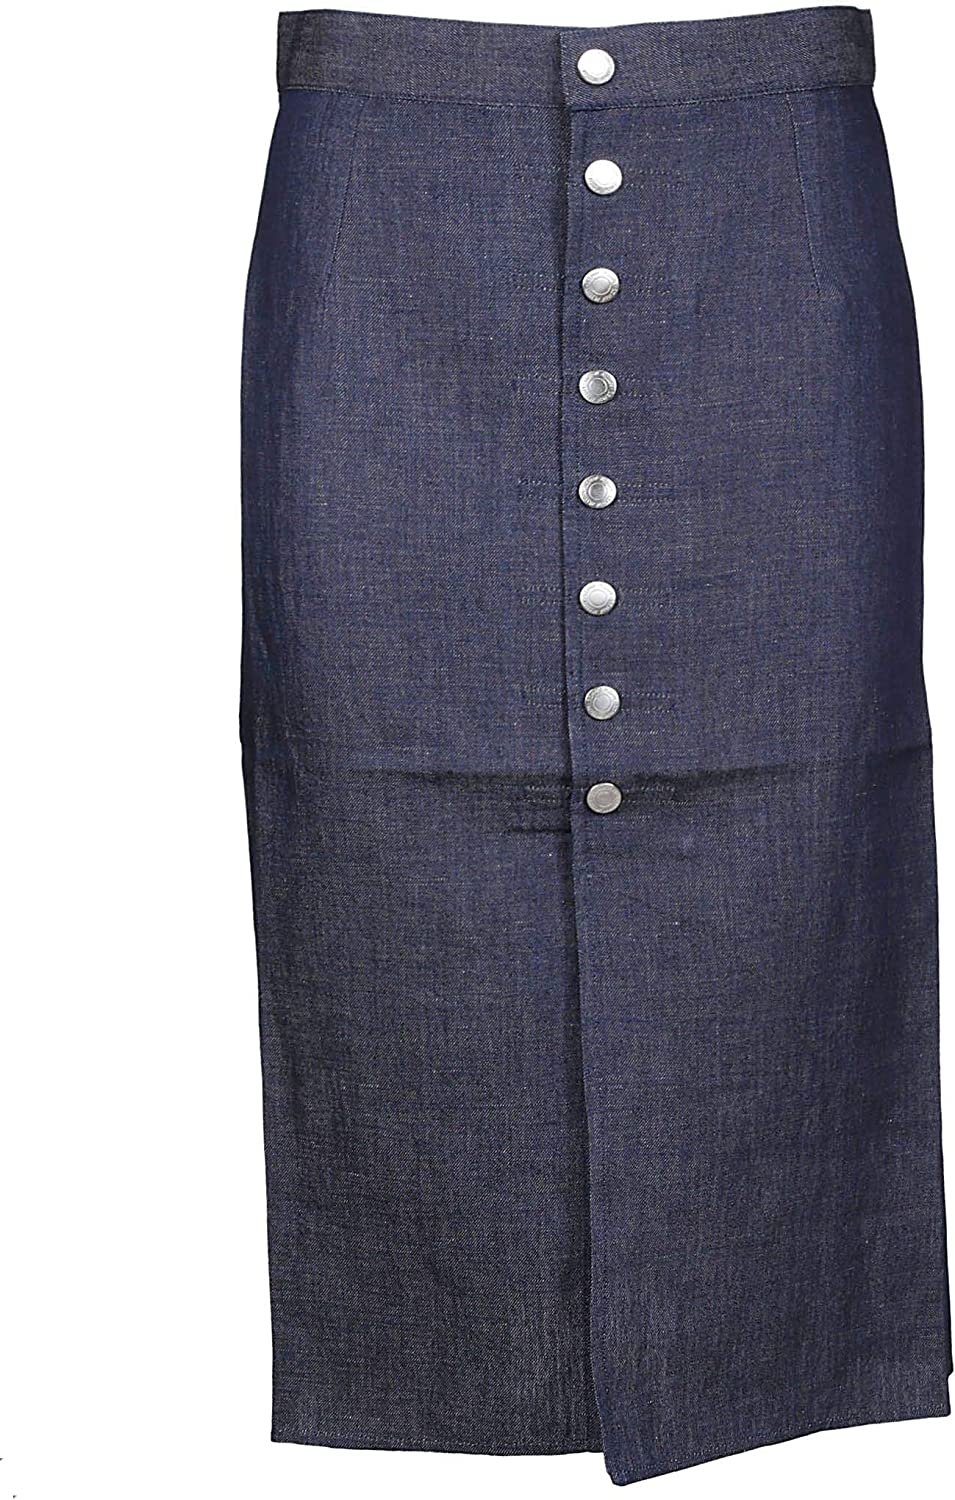 SIMON MILLER Women's W212111493928 blueee Cotton Skirt